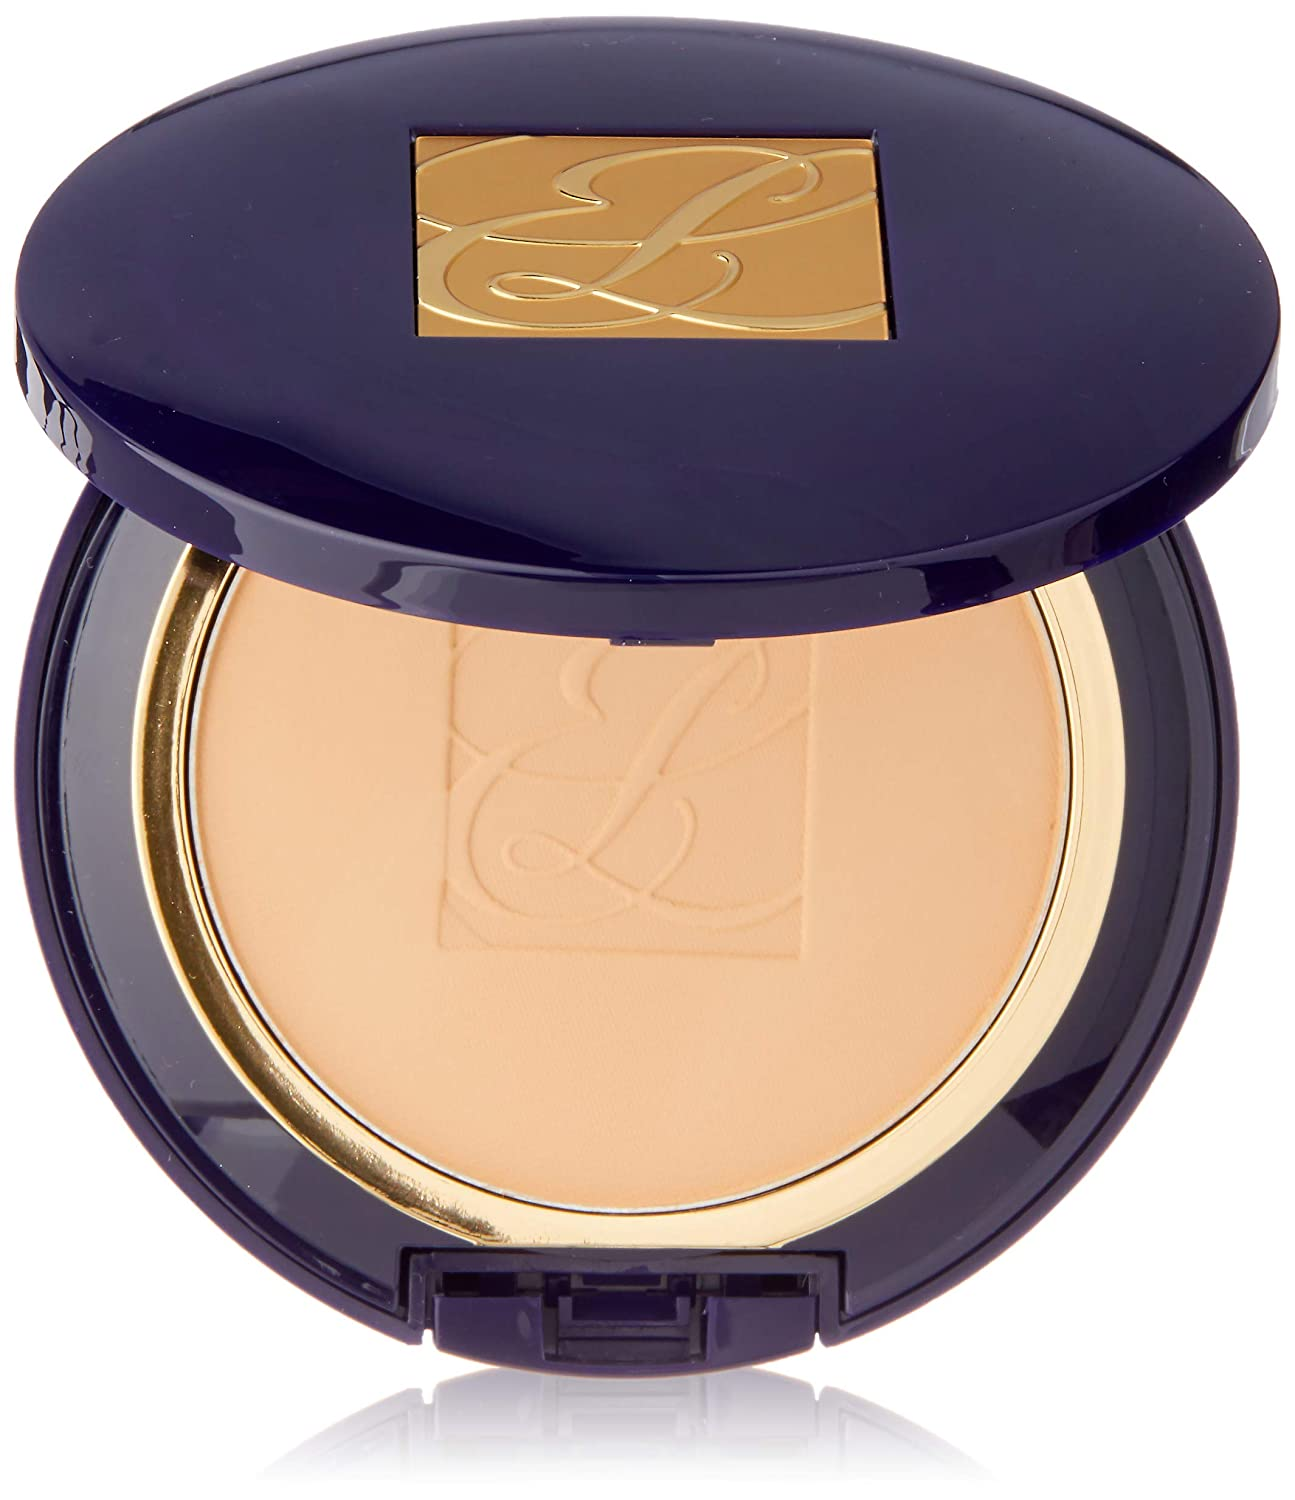 Estee Lauder Double Wear Stay-in-Place Powder Makeup, Tawny, 0.42 Ounce